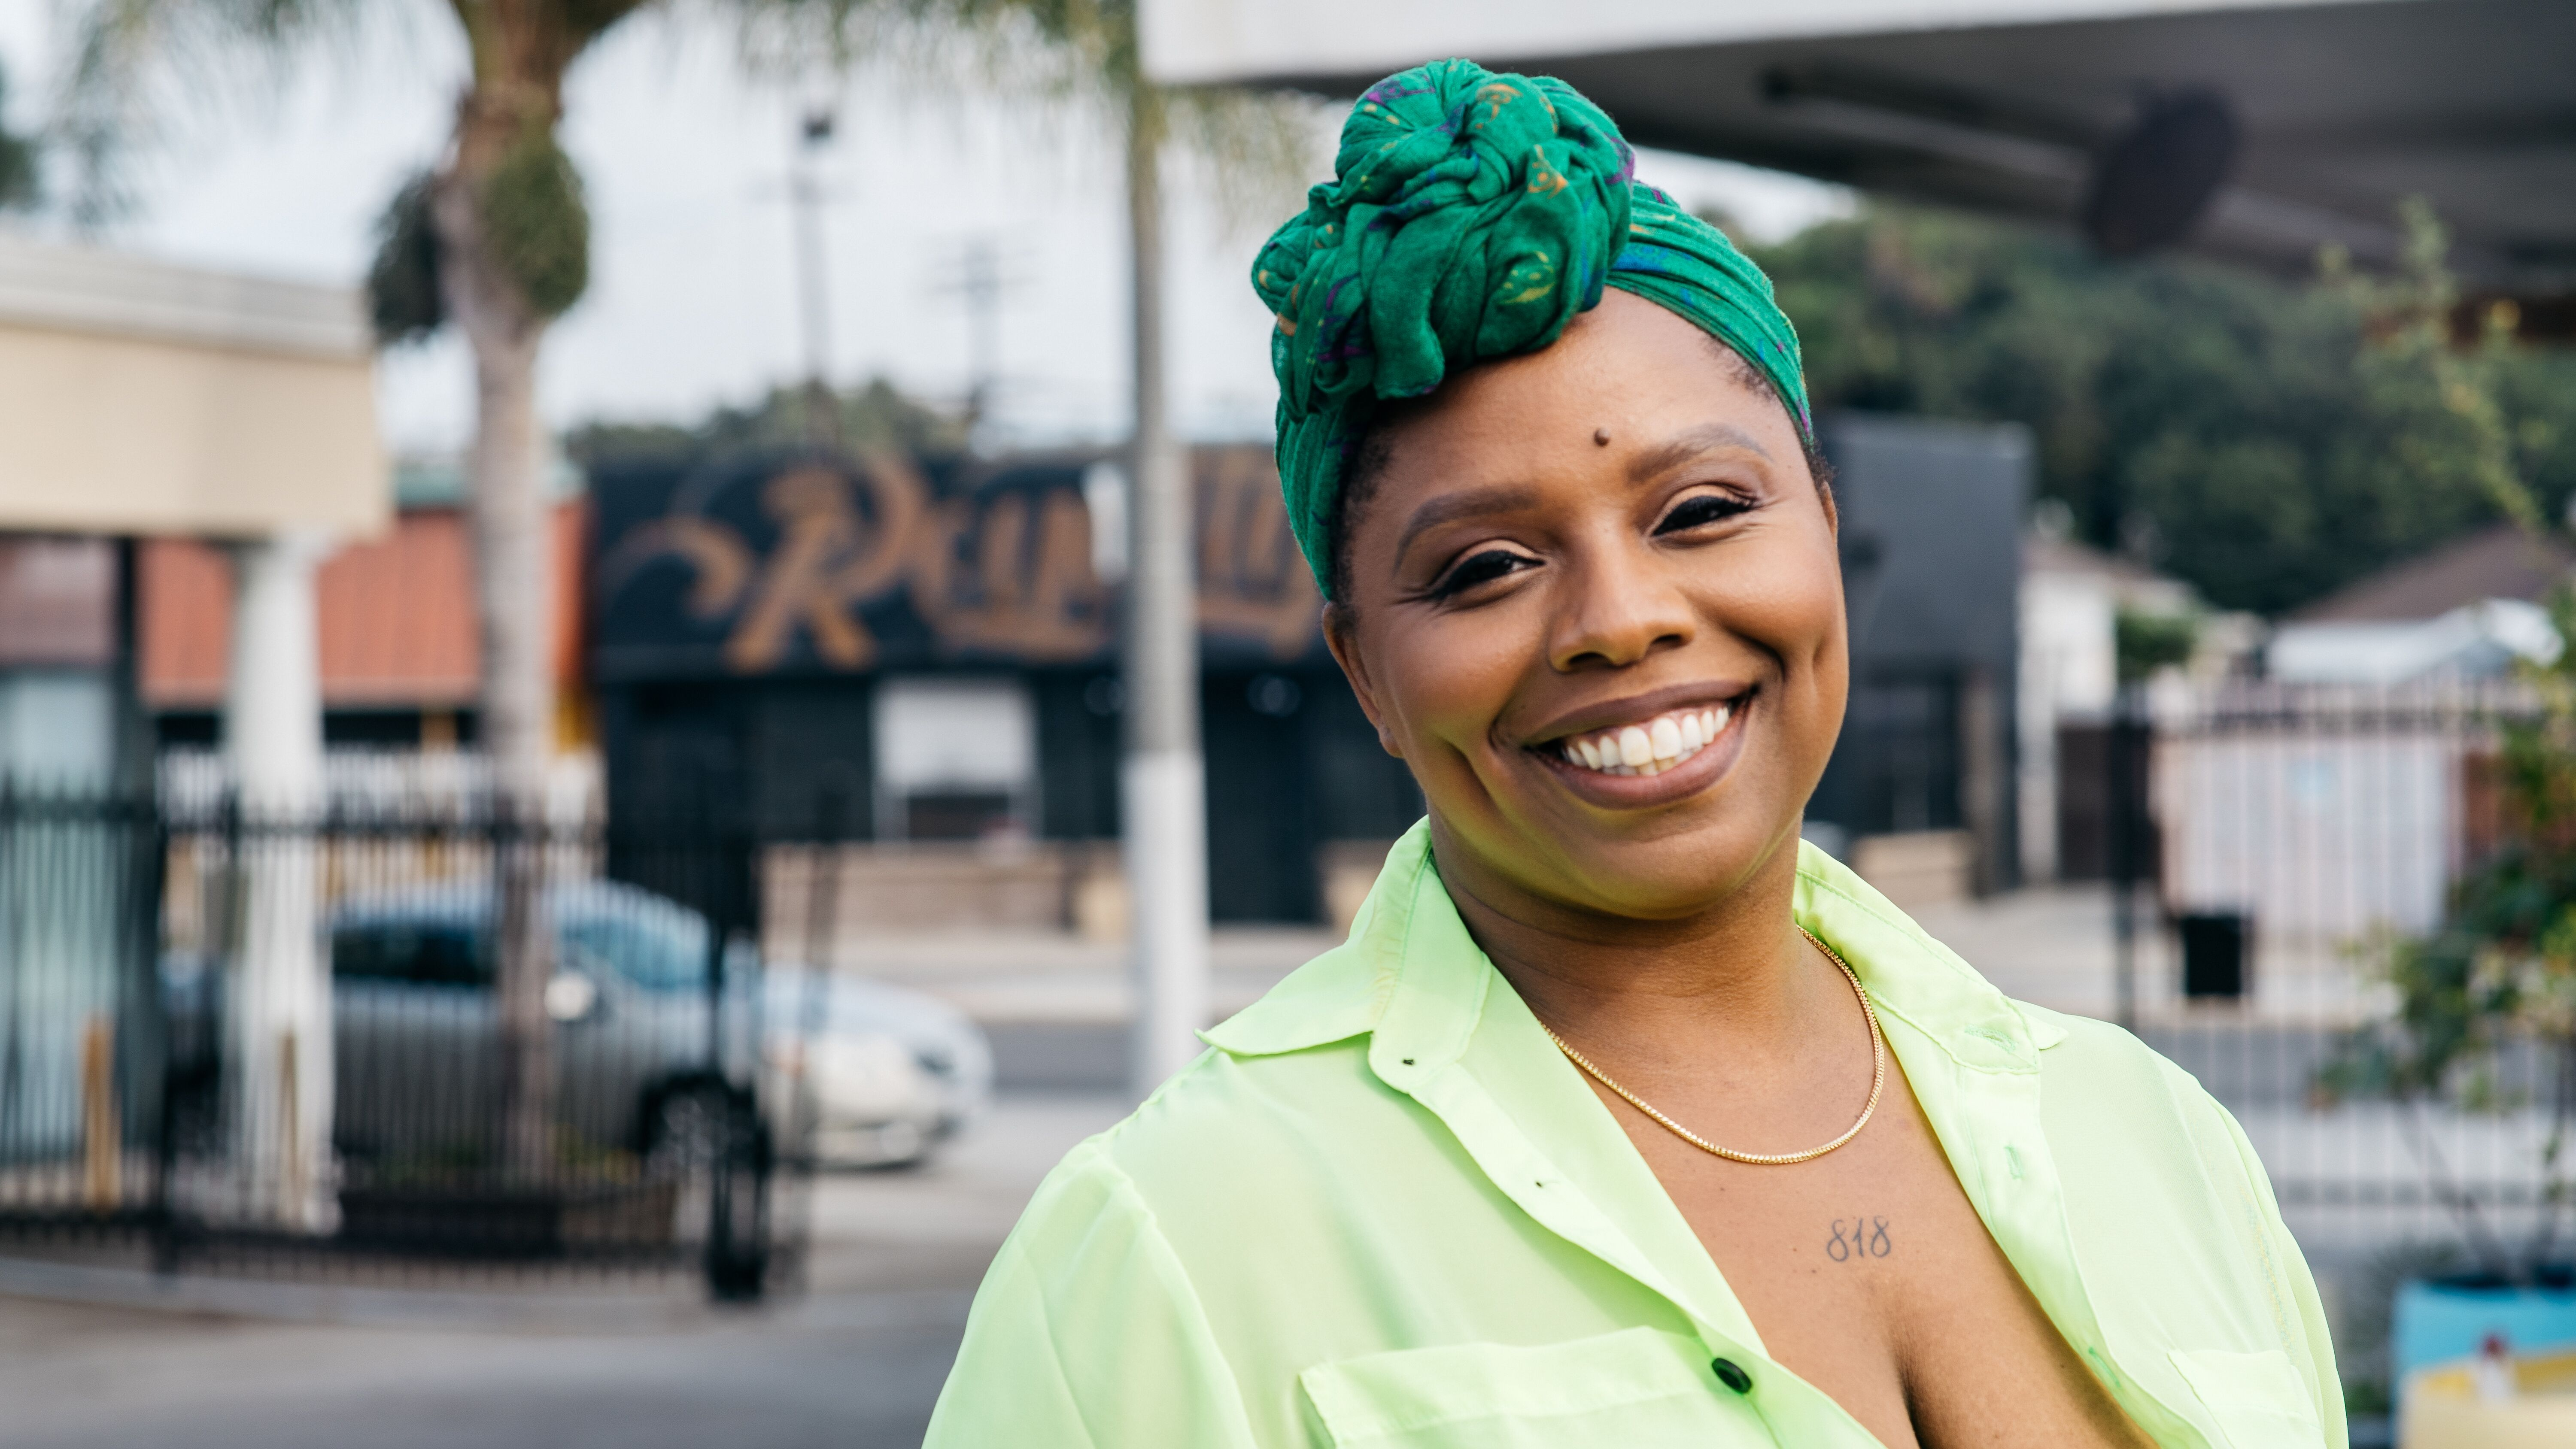 New Keynote Announced: Black Lives Matter CoFounder Patrisse Cullors in Conversation at SLJ Summit